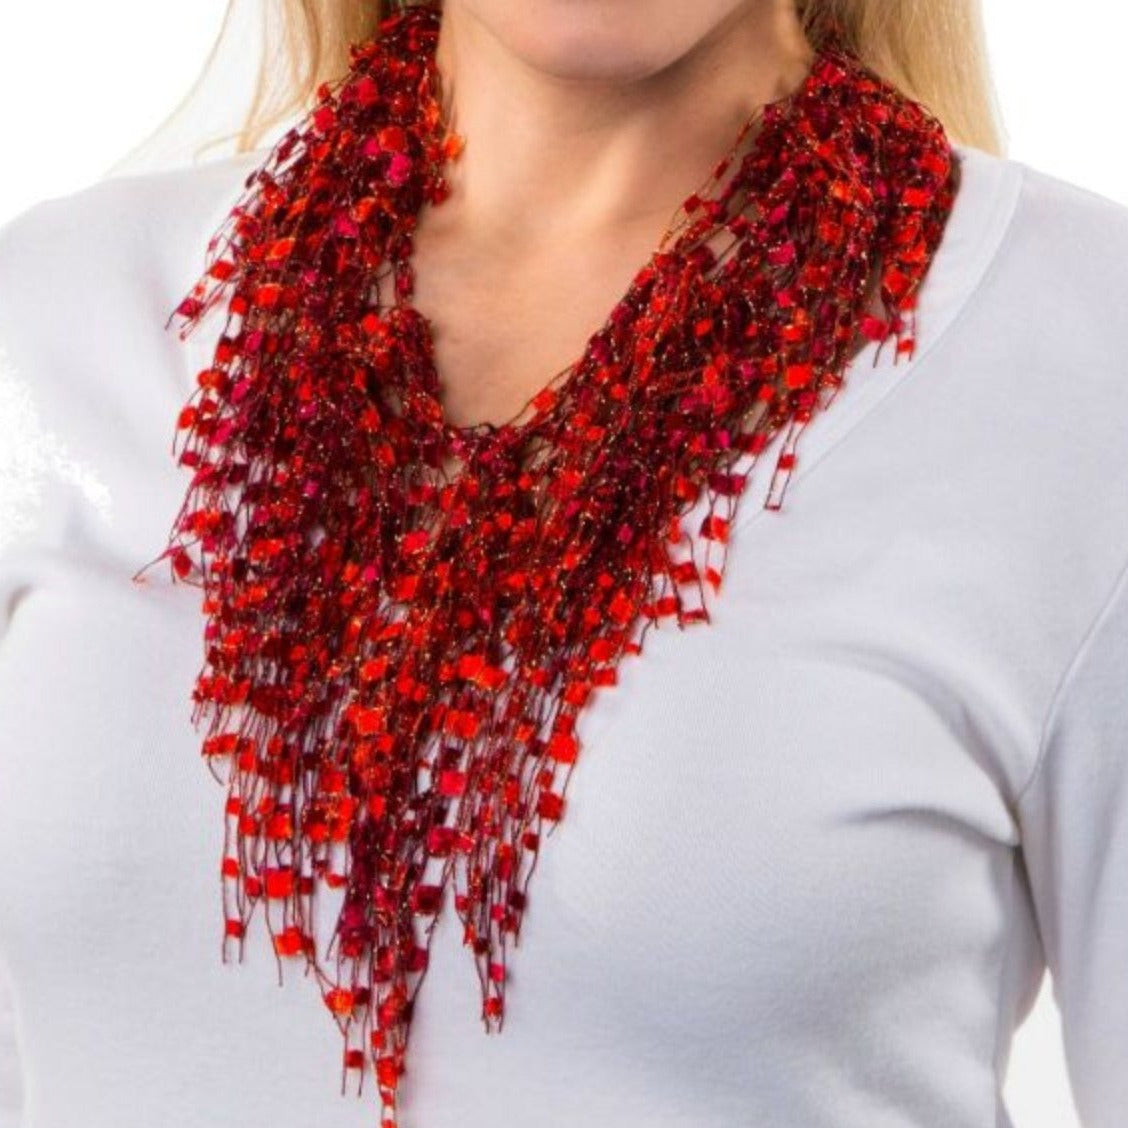 Scarf Necklace by ScarfLady